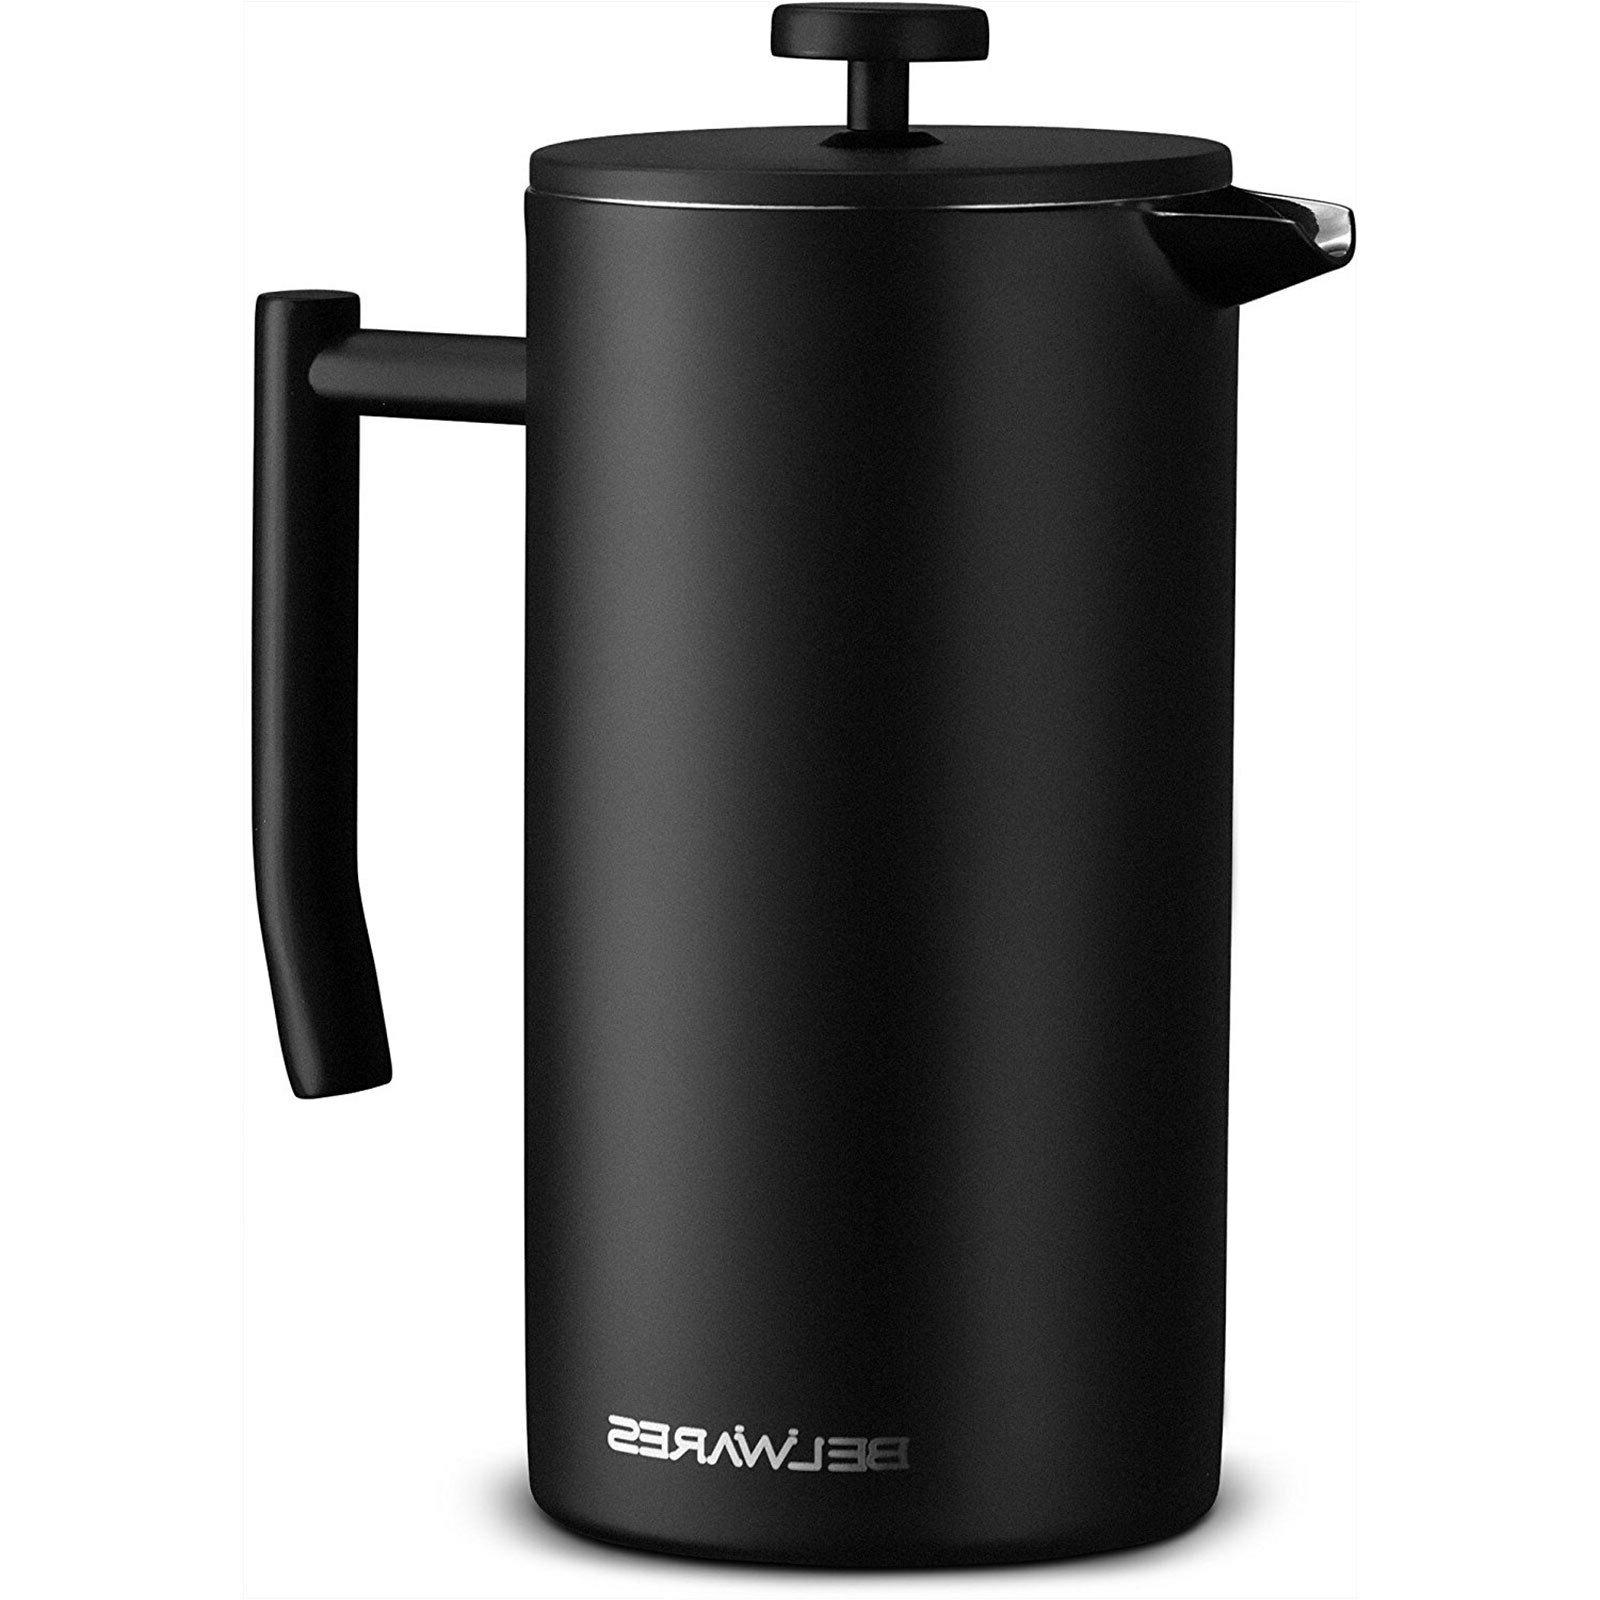 Belwares Steel French Coffee Maker with